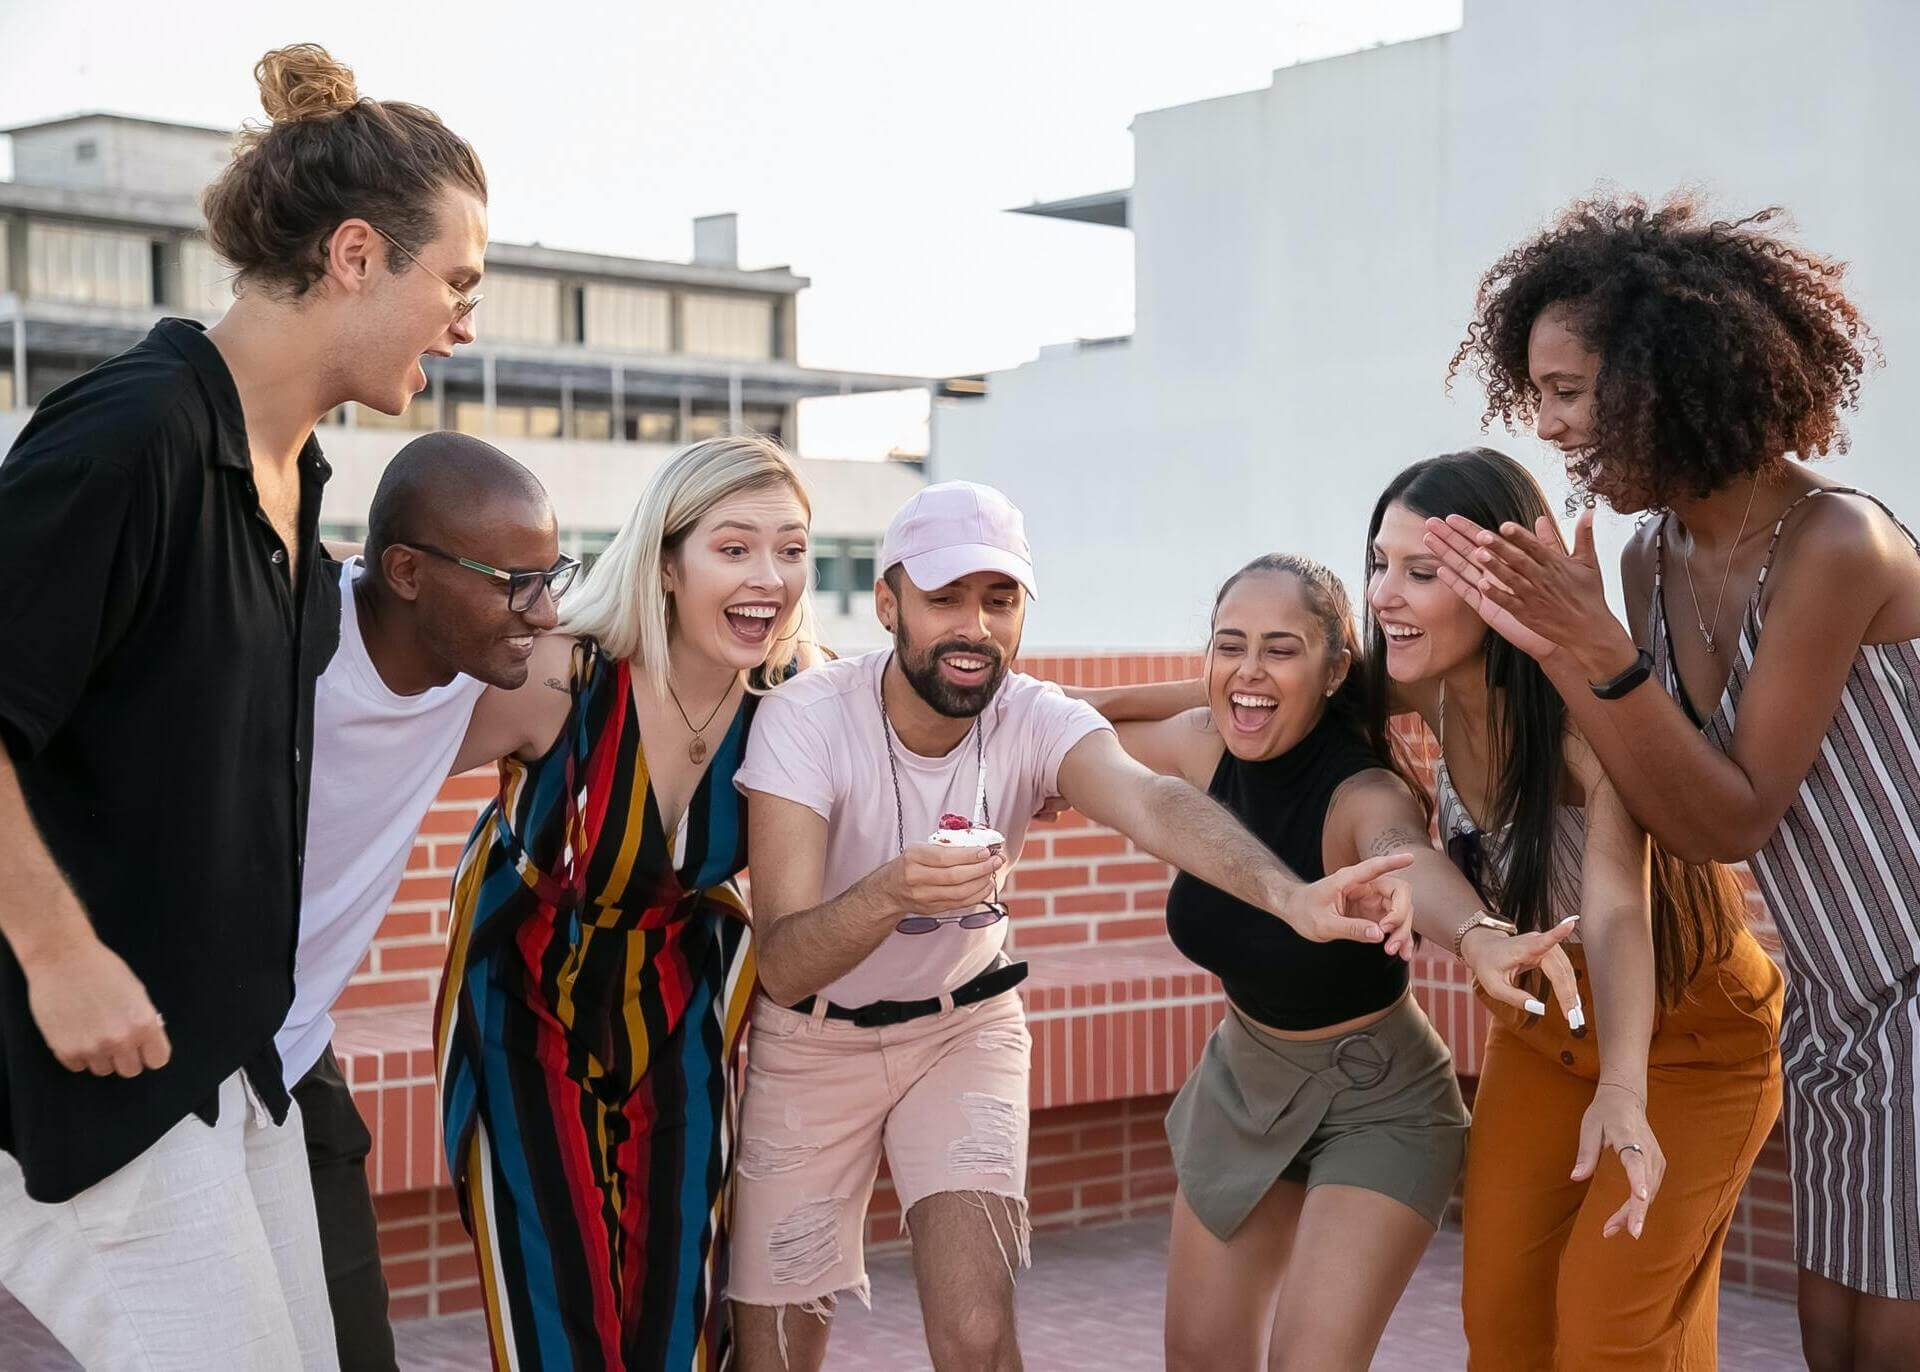 group of young happy people